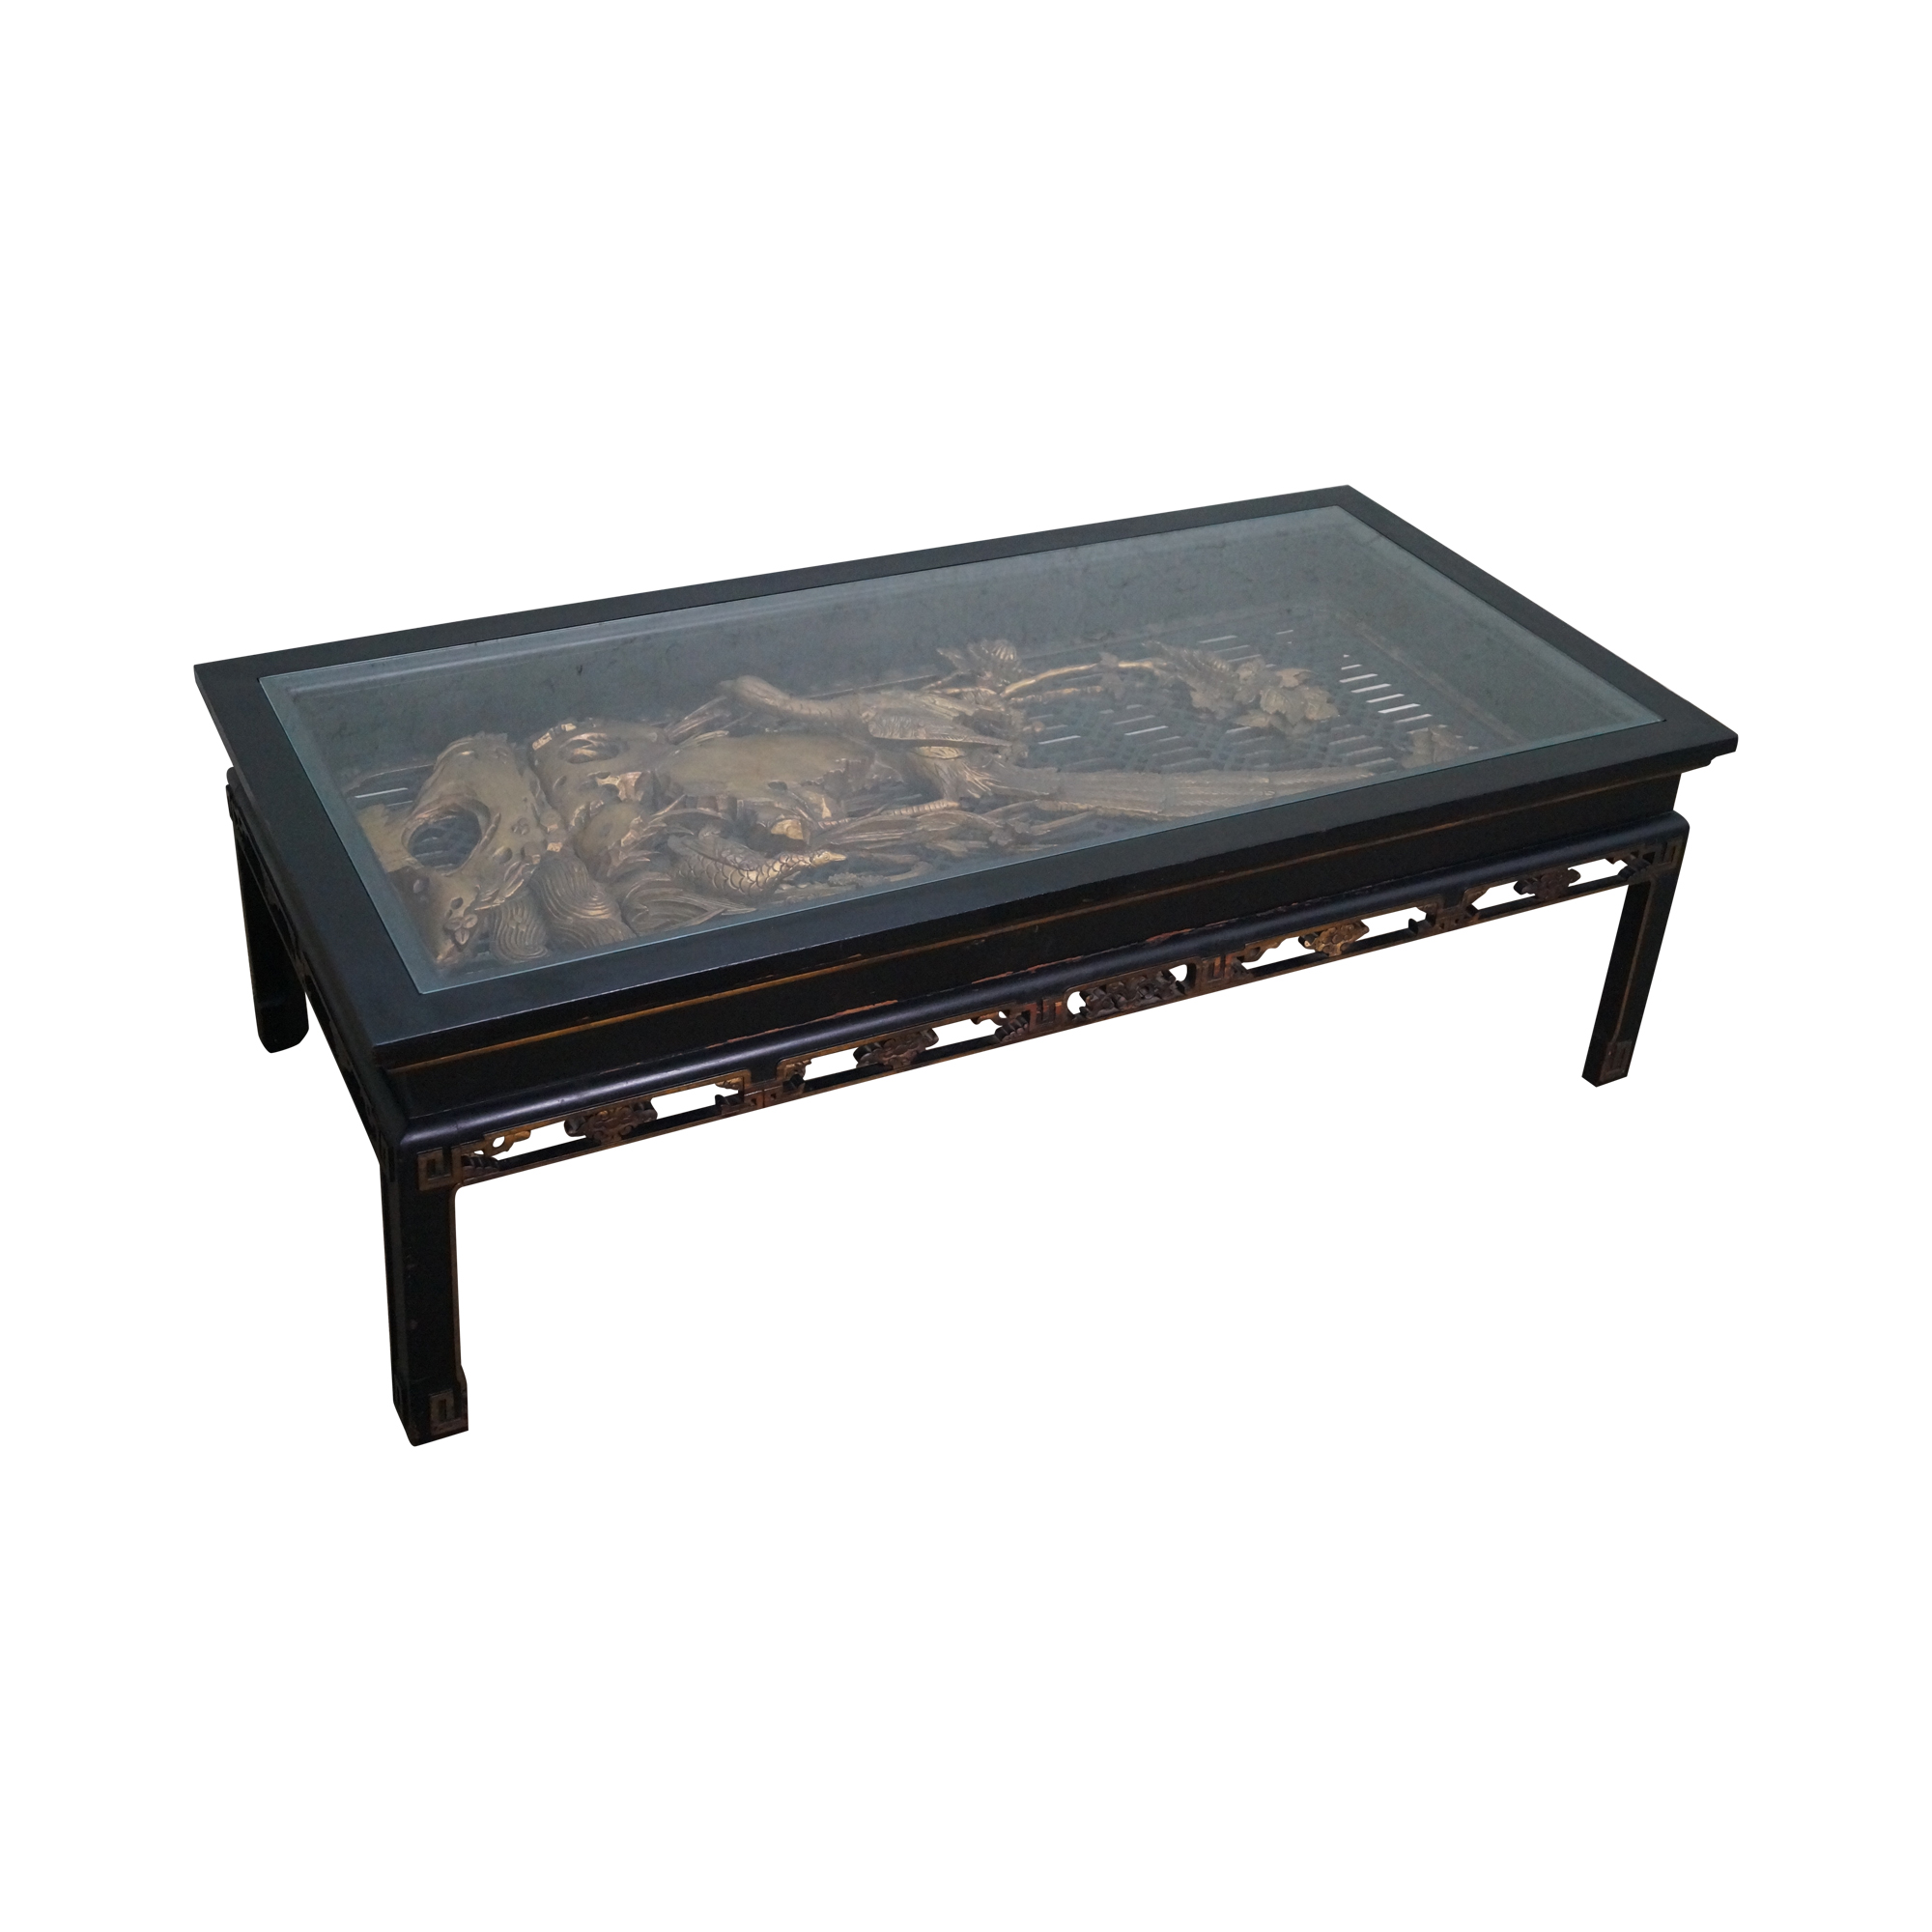 Antique Chinese Coffee Tables: Antique Black & Gold Chinese Asian Coffee Table